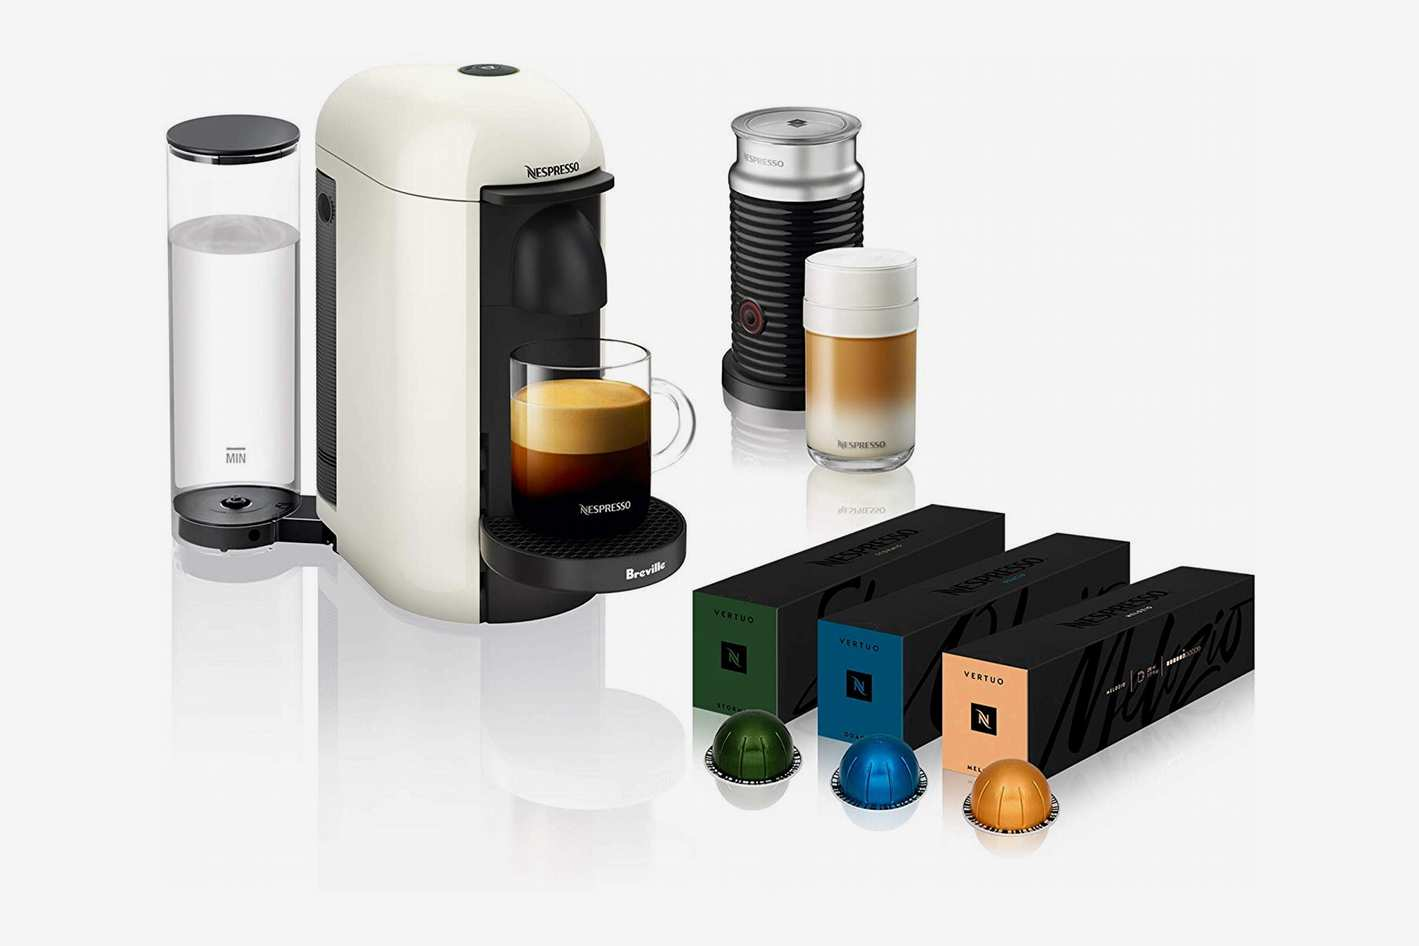 Nespresso VertuoPlus Coffee and Espresso Machine with Aeroccino Milk Frother